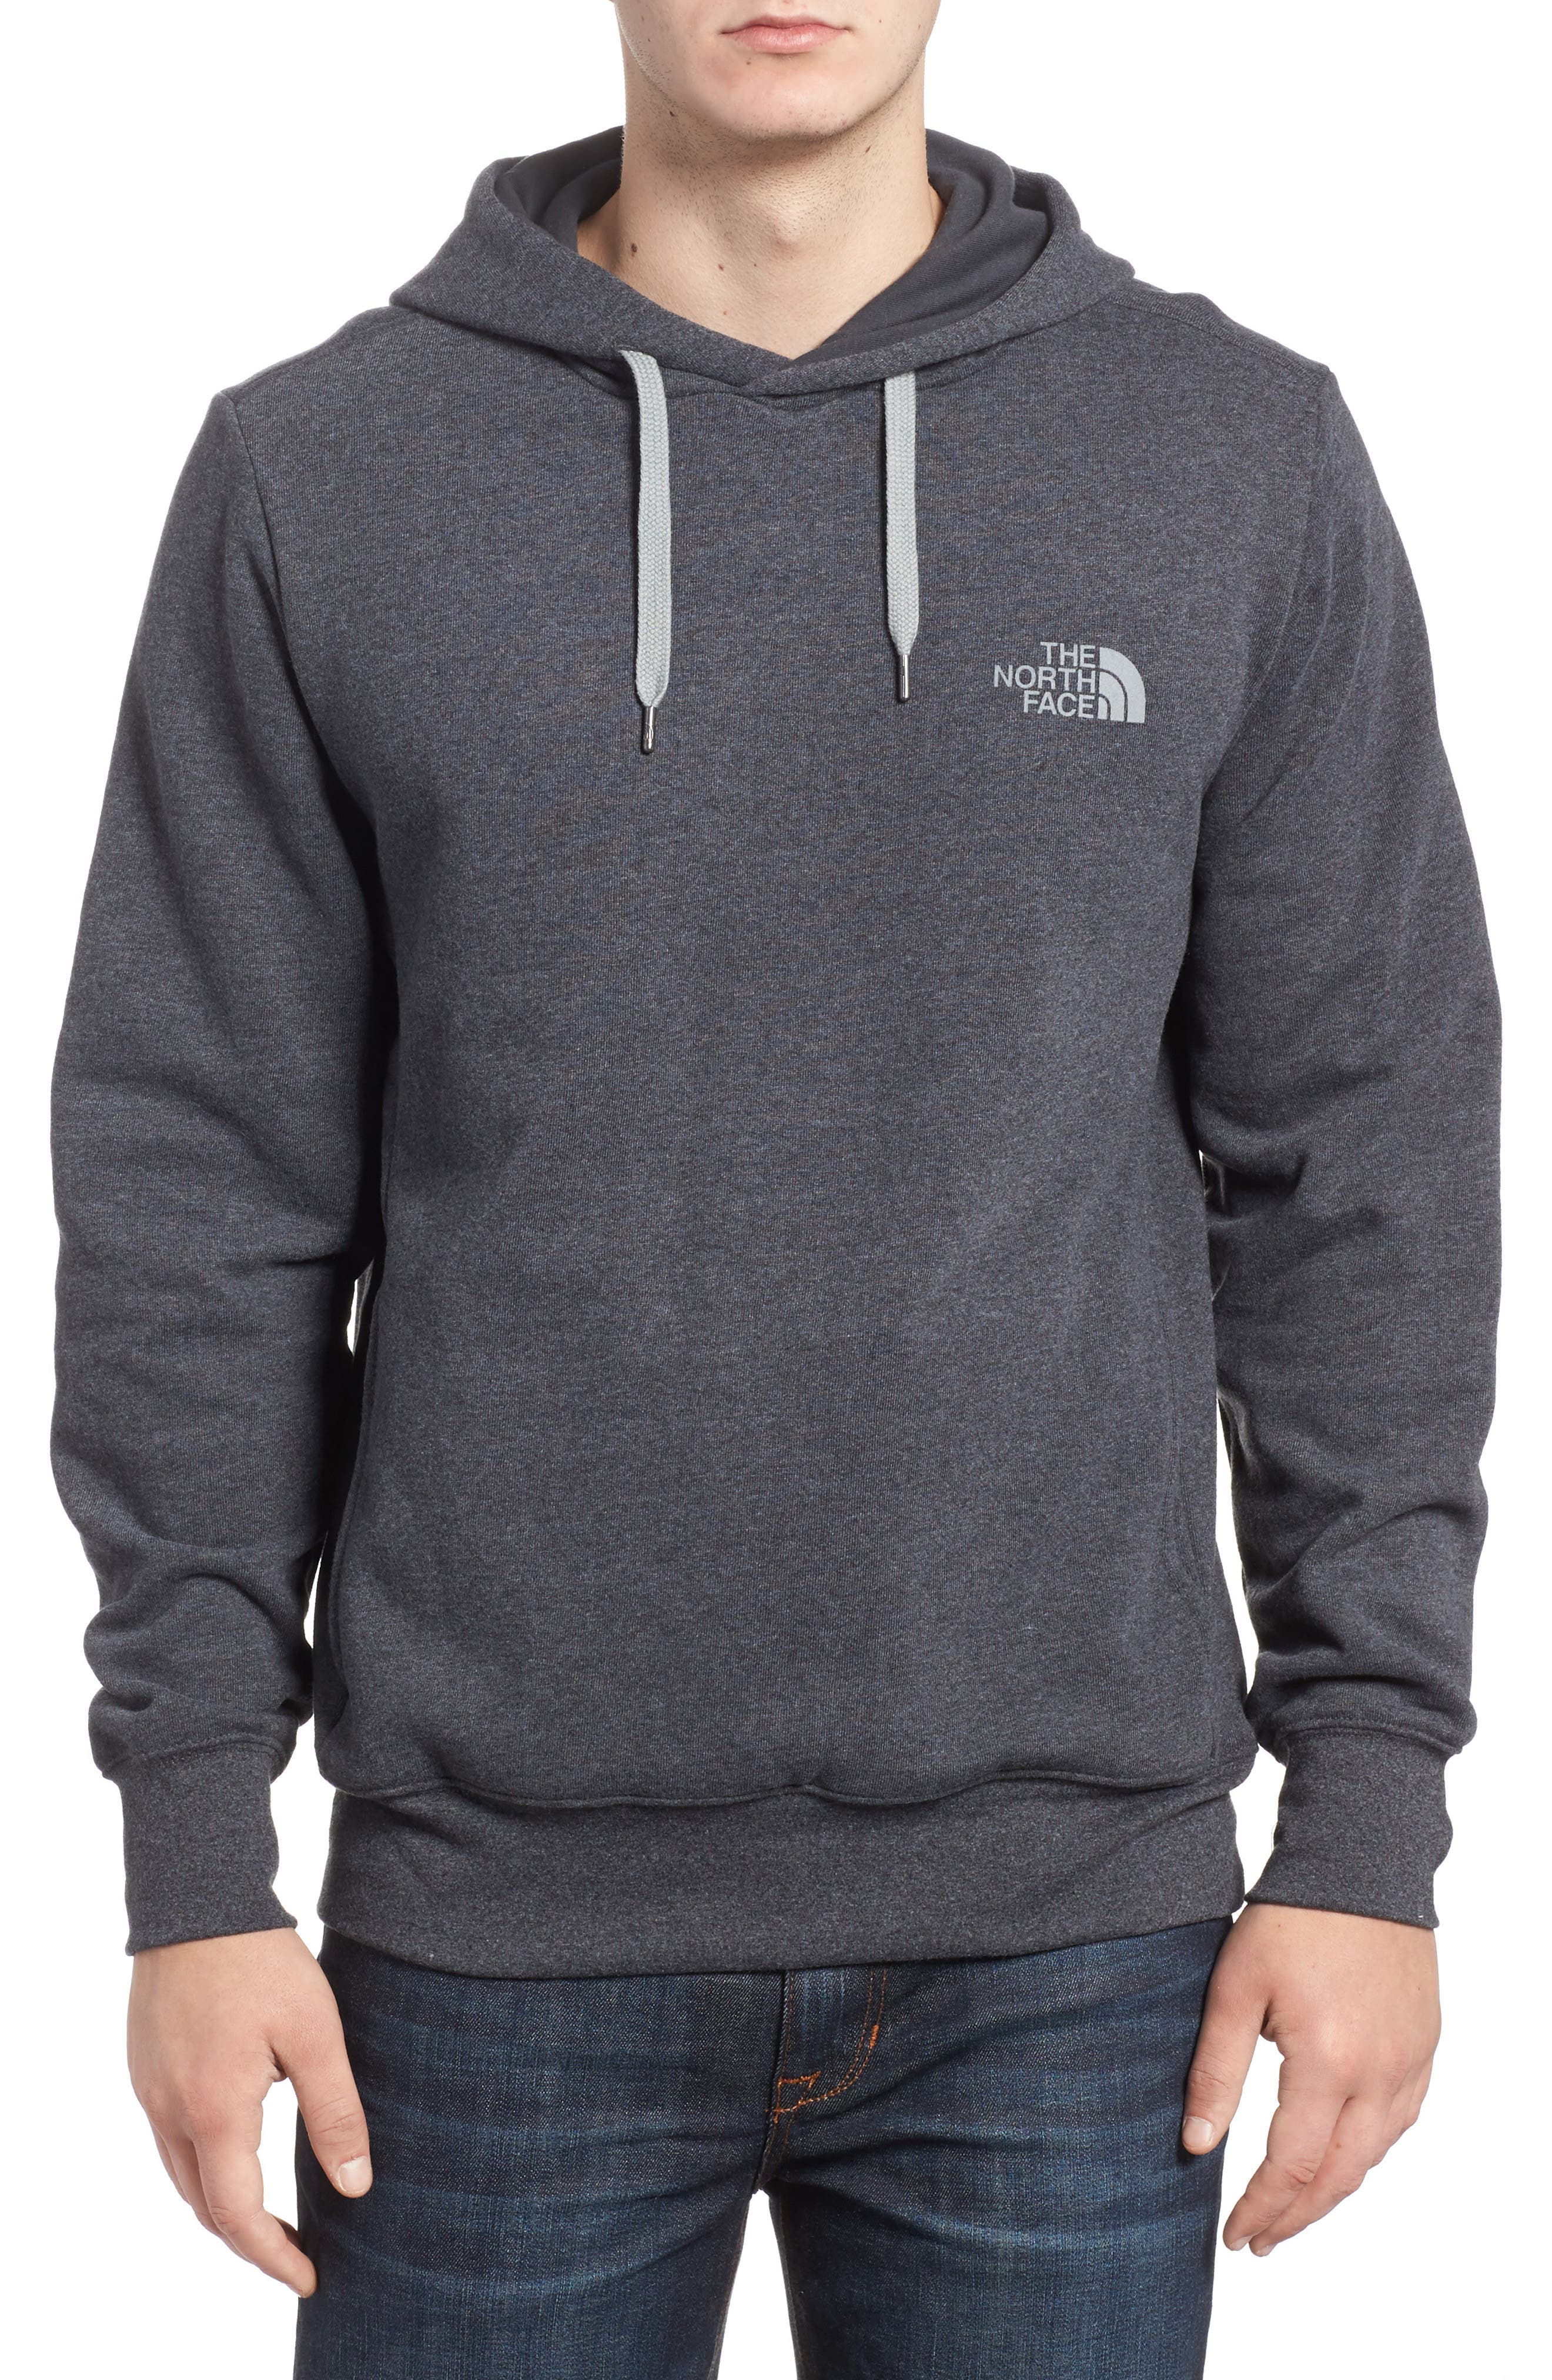 The North Face Trivert Cotton Blend Hoodie